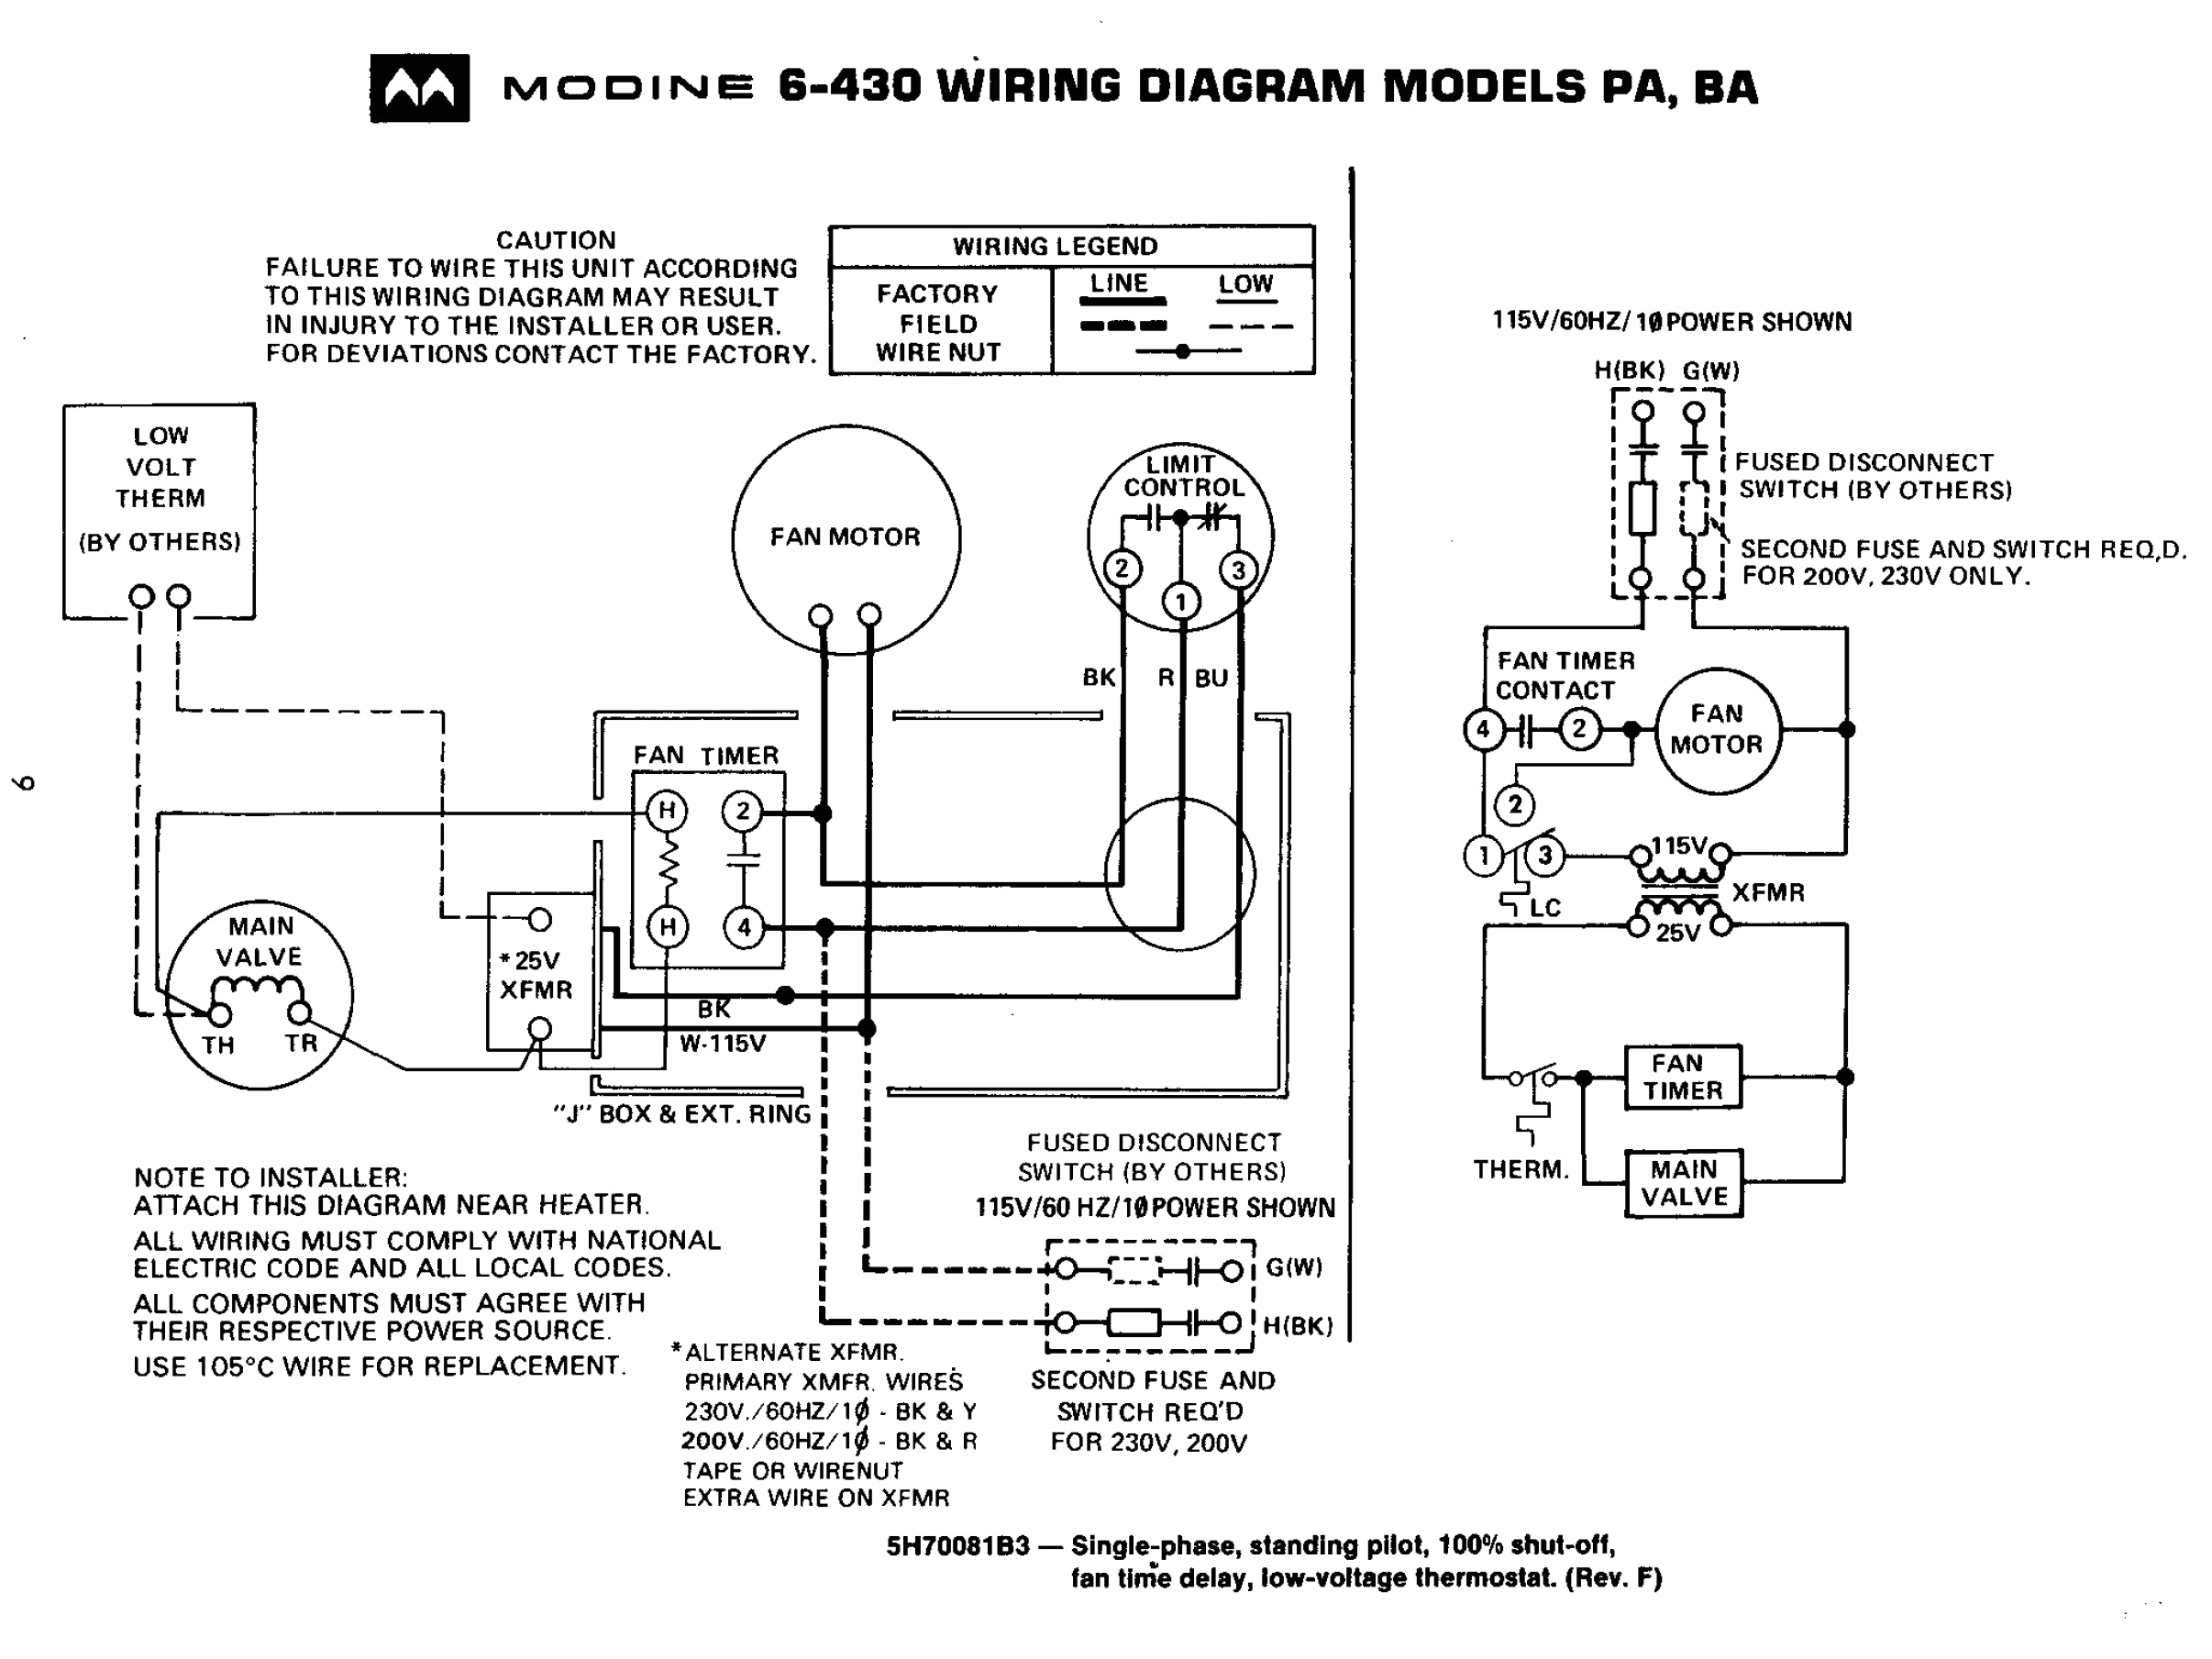 Modine Gas Heater Wiring Diagram Typical Unit Heater Wiring Diagram Wiring Diagram Technic